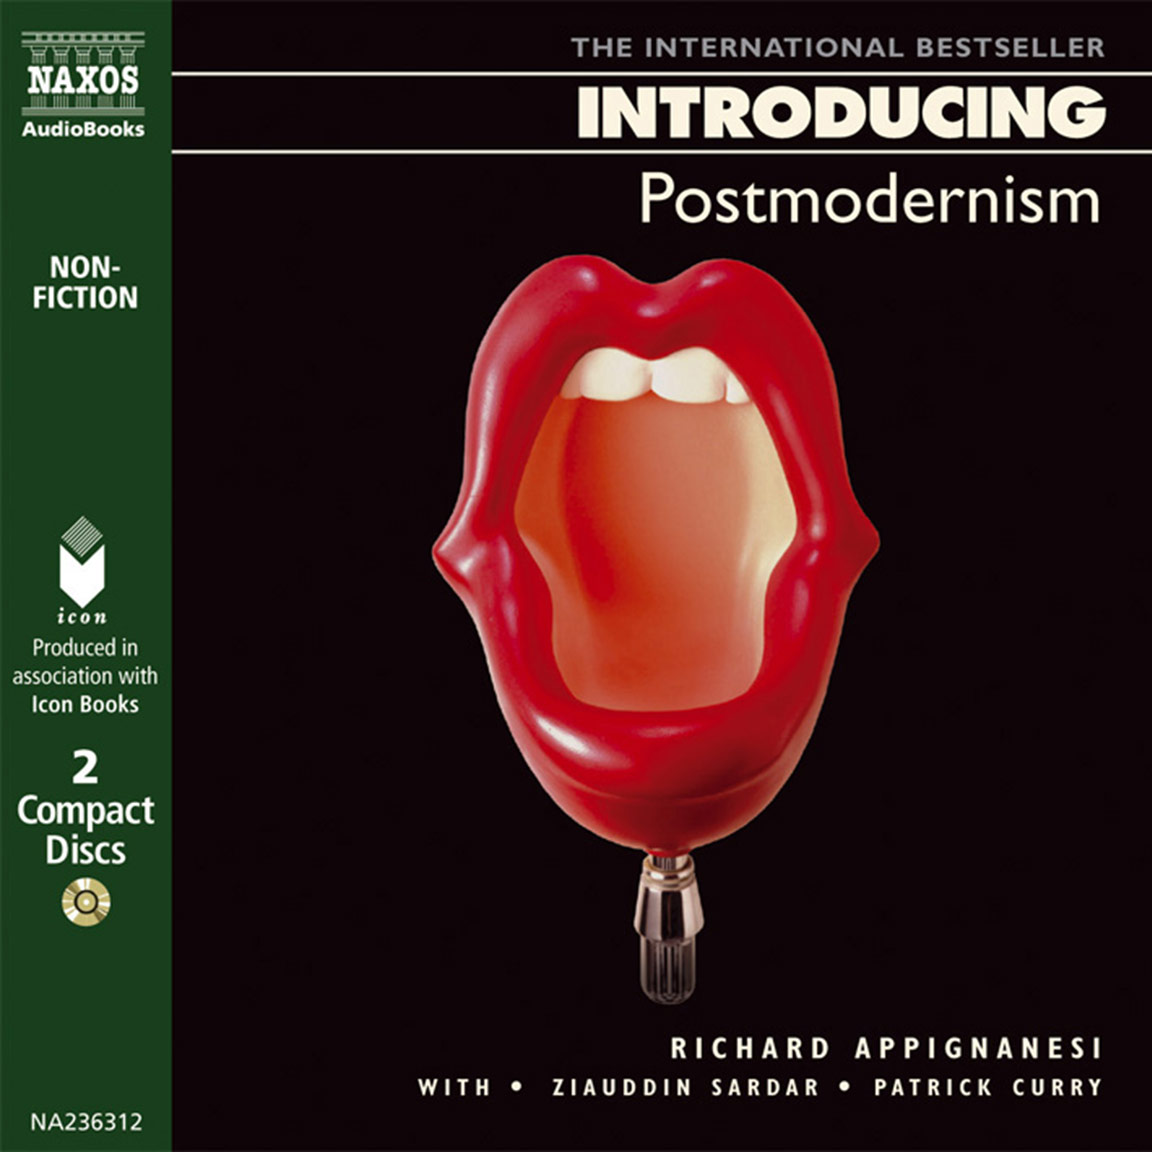 Introducing Postmodernism (abridged)